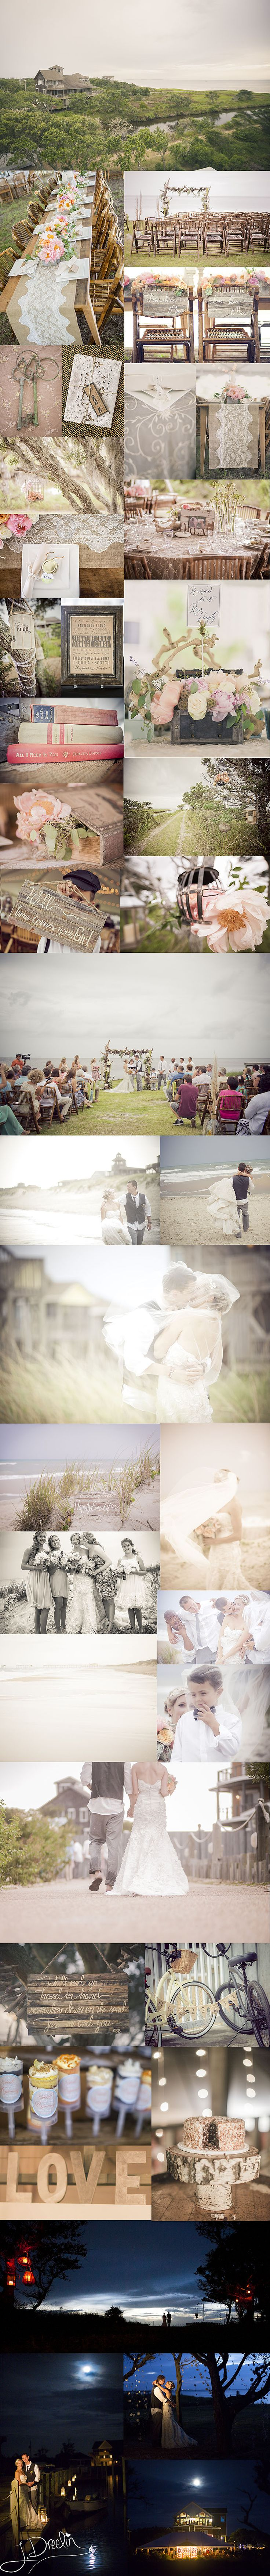 Julie Dreelins Beach Productions photography // Lovely details from an Outer Banks Wedding